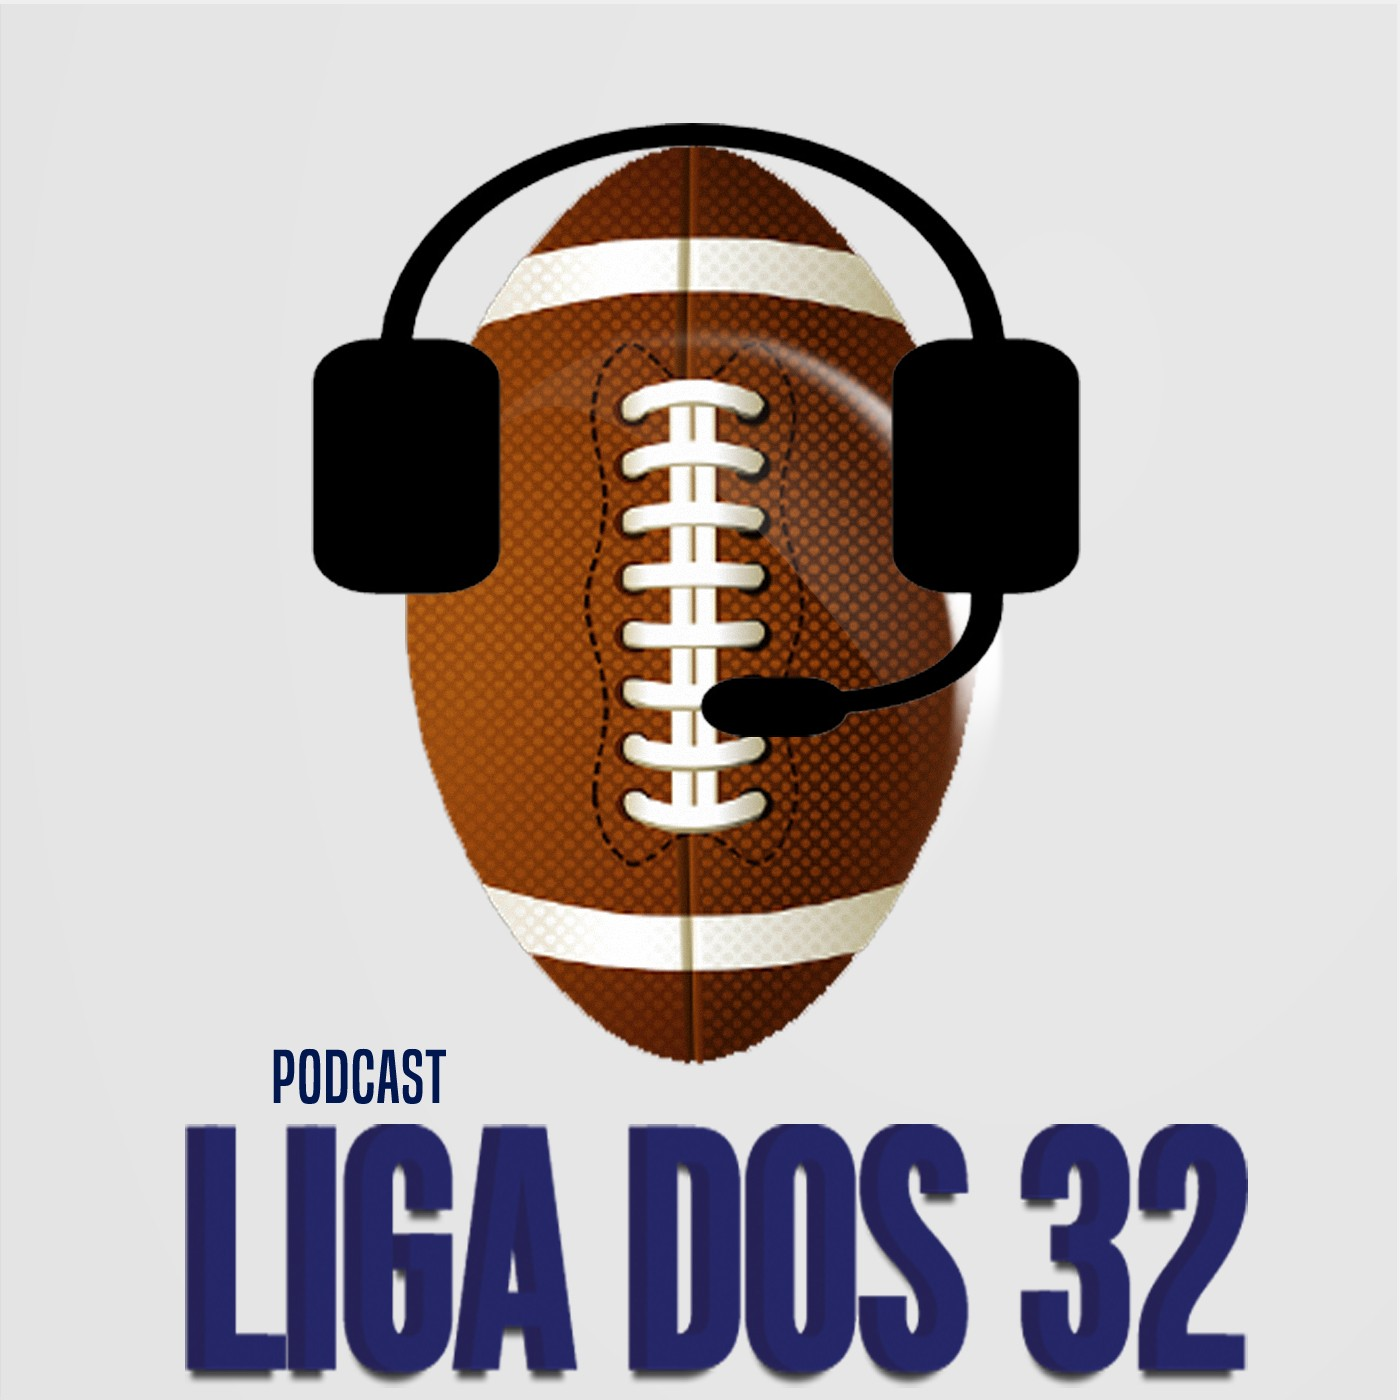 Liga dos 32 by Liga dos 32 on Apple Podcasts ba005248c2d2d